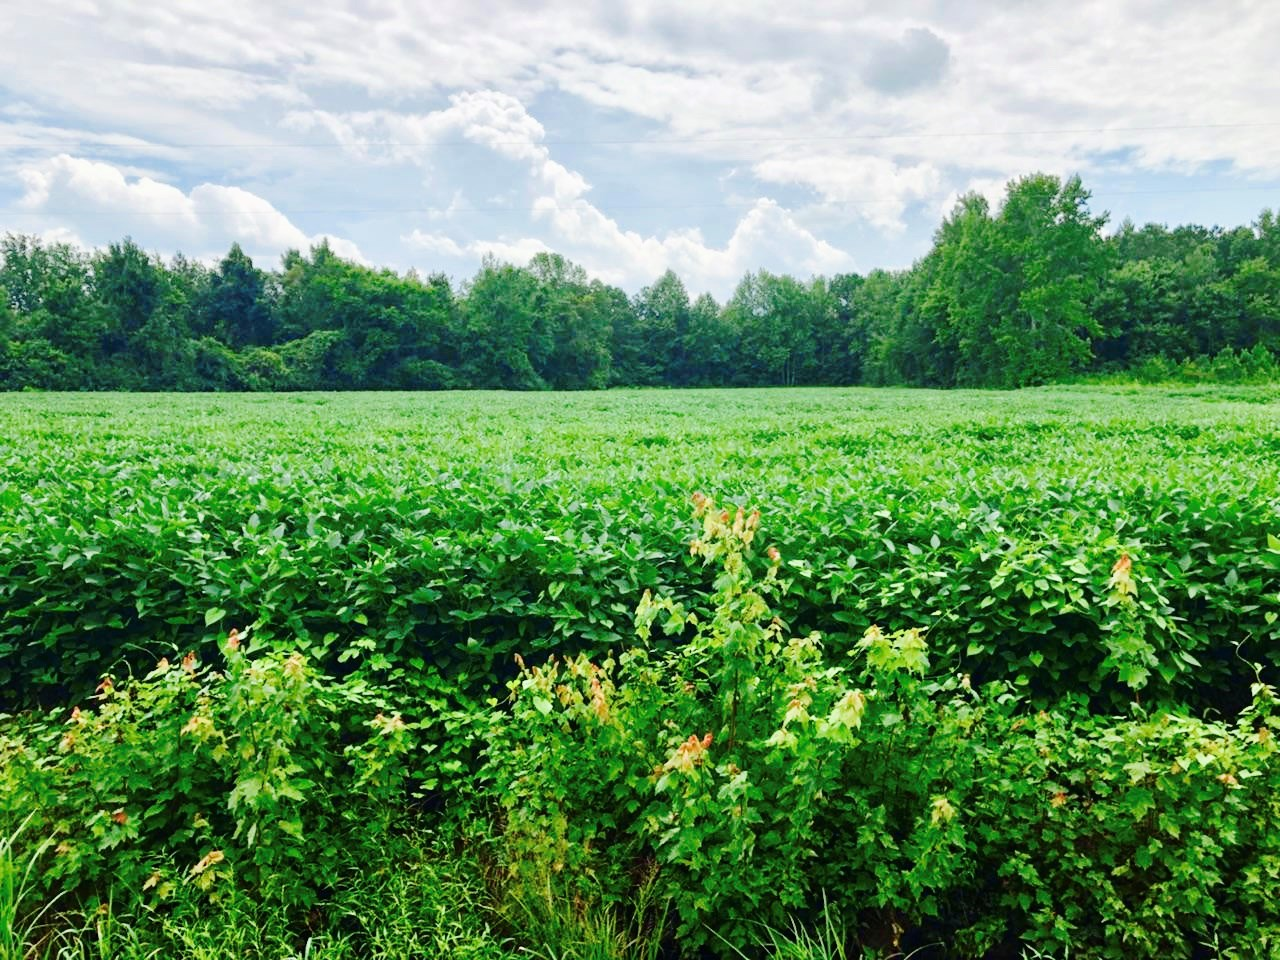 Timberland/Farmland for Sale in Washington County, NC